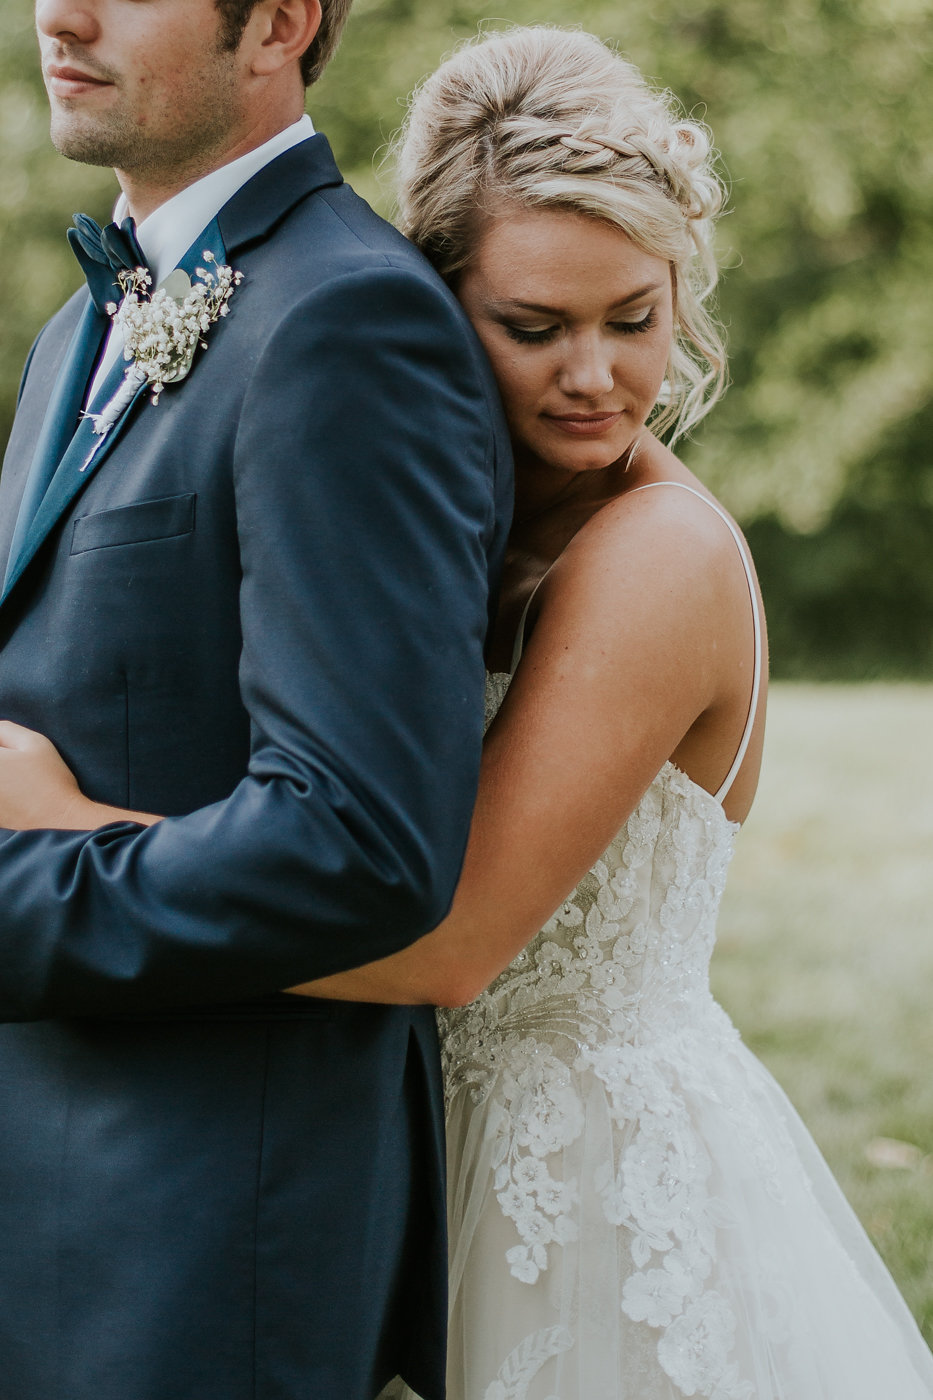 Gorgeous Bride and Groom Wedding Shots - North Carolina Wedding Venue - Triple J Manor House Wedding